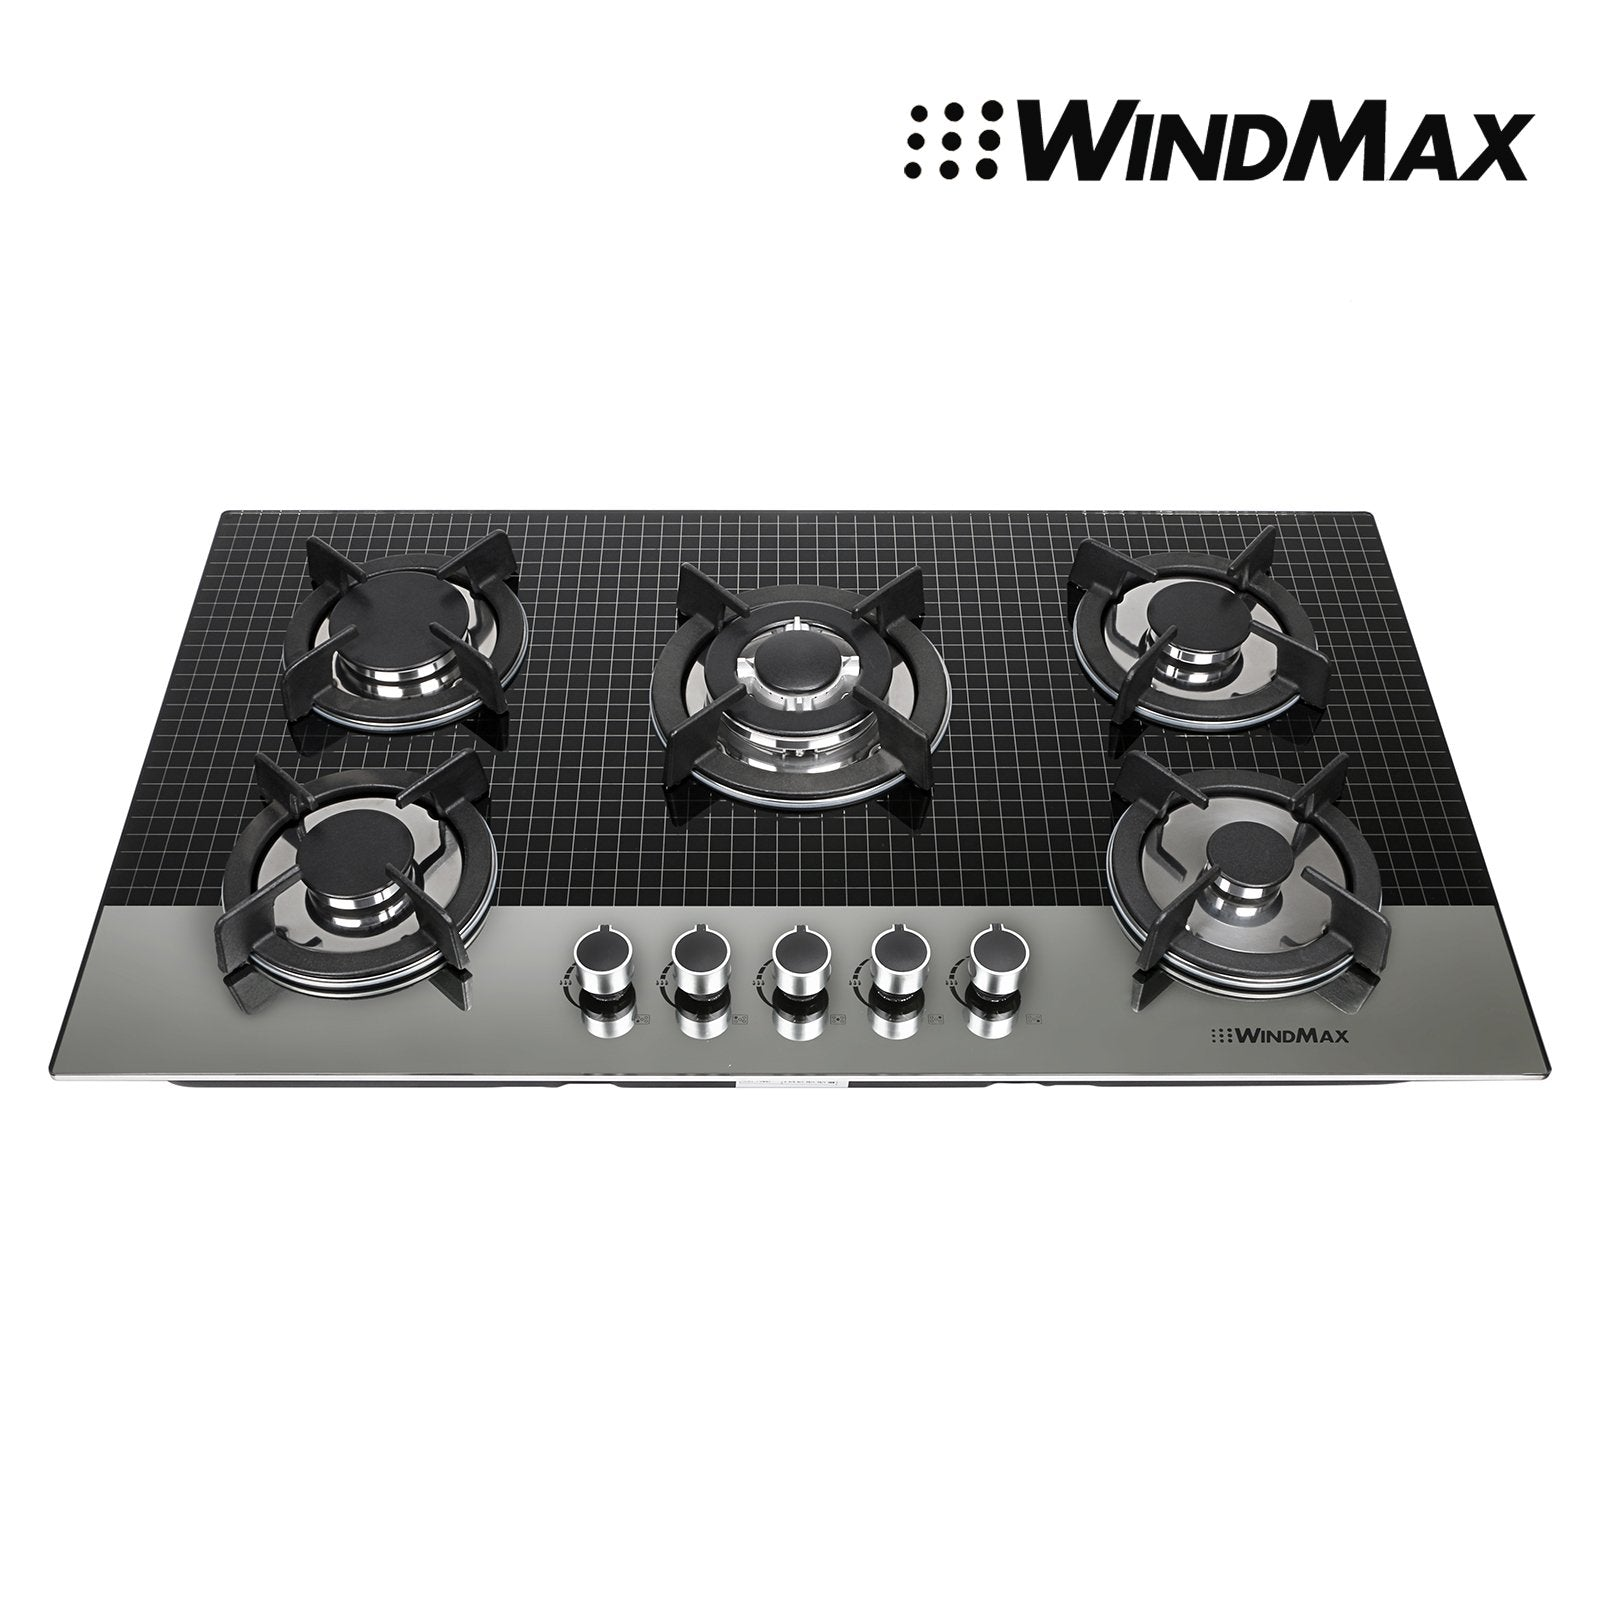 [US Seller,ship from CA,US ] Windmax EuroStyle 35.5 in. Coated Glass 5 Burners Built-In Stove NG Gas Cooktop Cooker